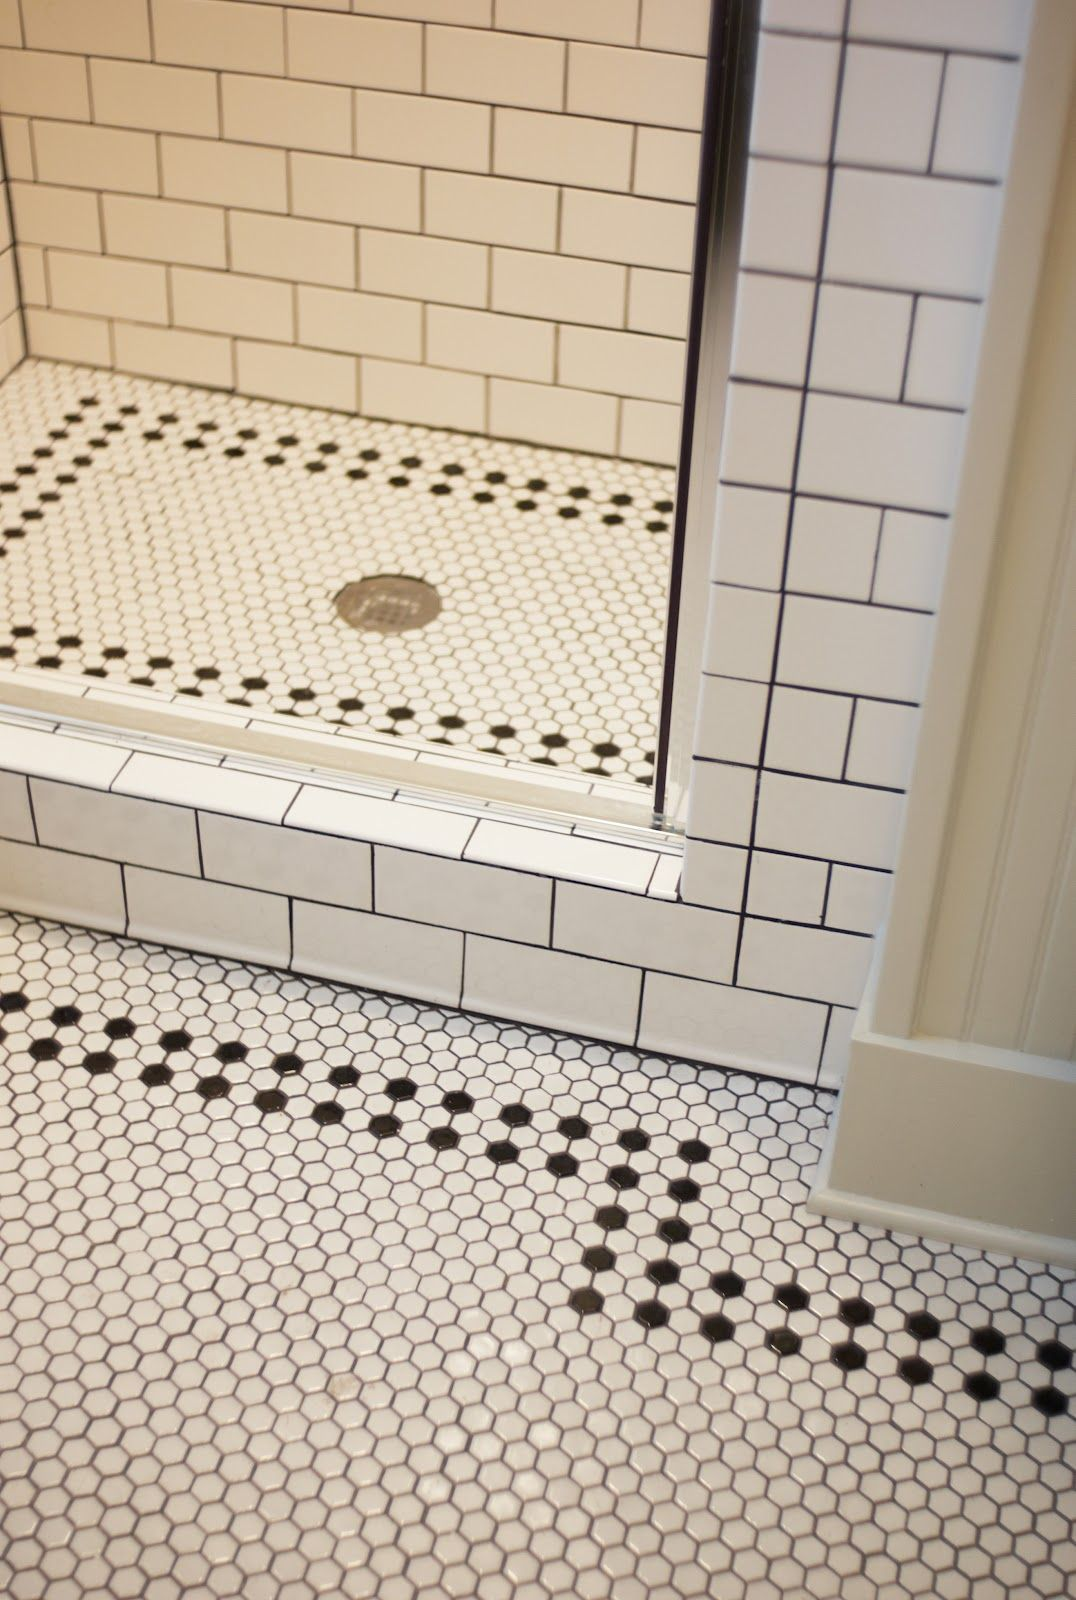 Perfect White Bathroom With Black And White Mosaic Tiles Flooring Vintage Bathroom Tile Patterned Bathroom Tiles White Bathroom Tiles